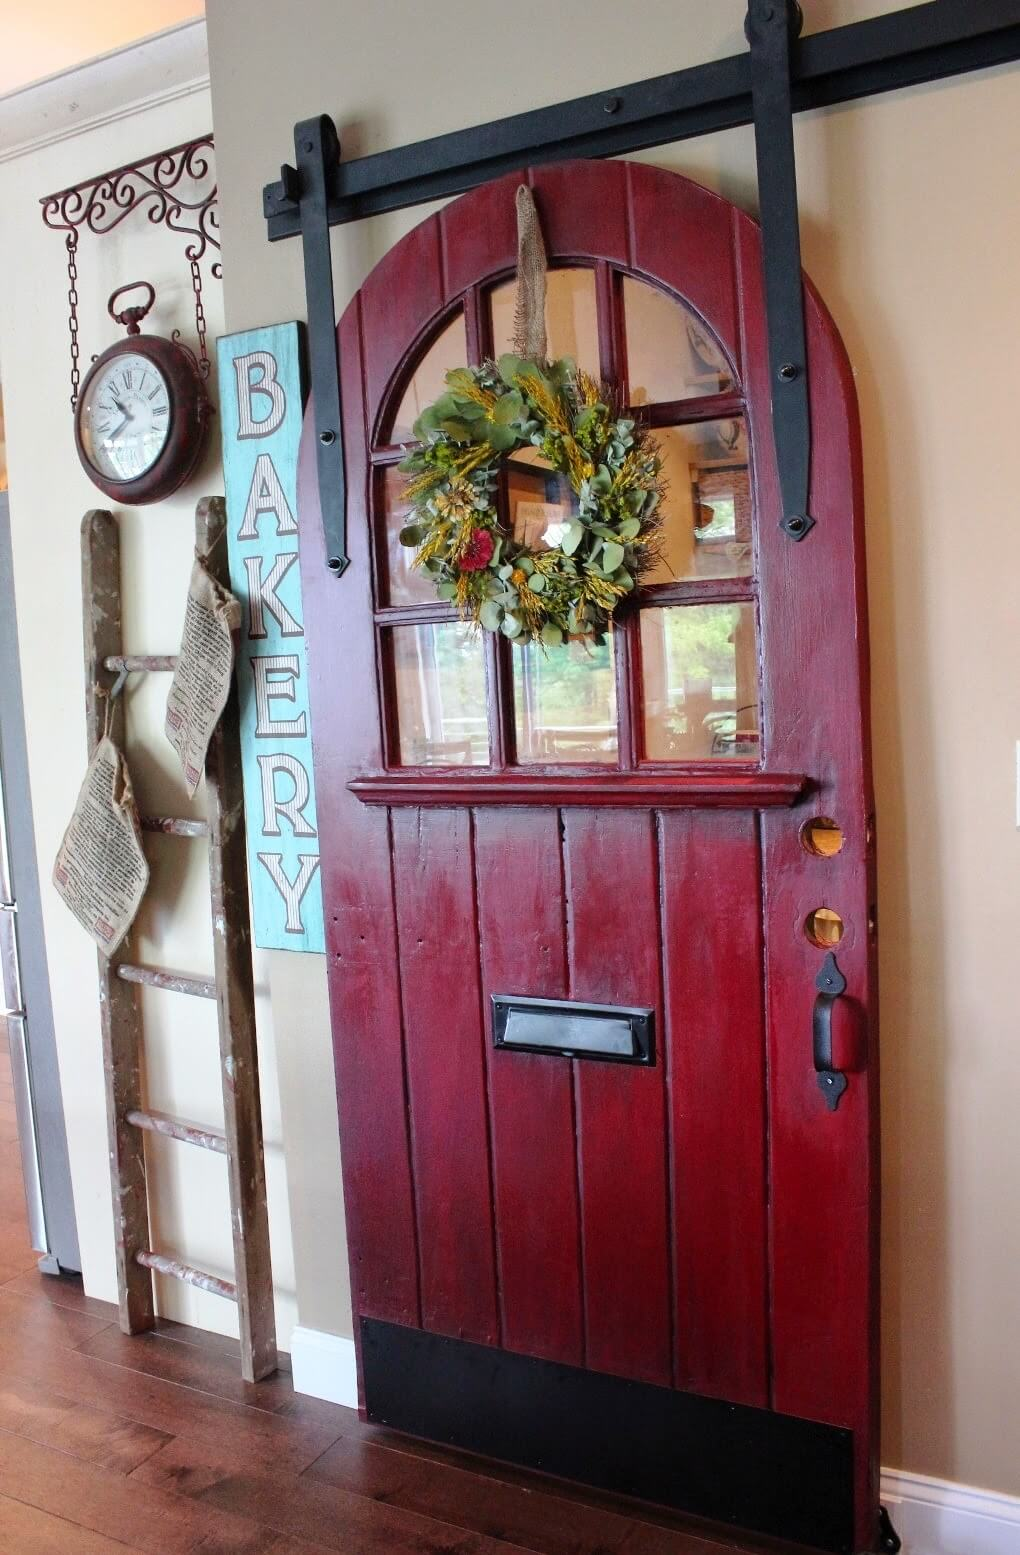 New Takes On Old Doors: 21 Ideas How to Repurpose Old Doors